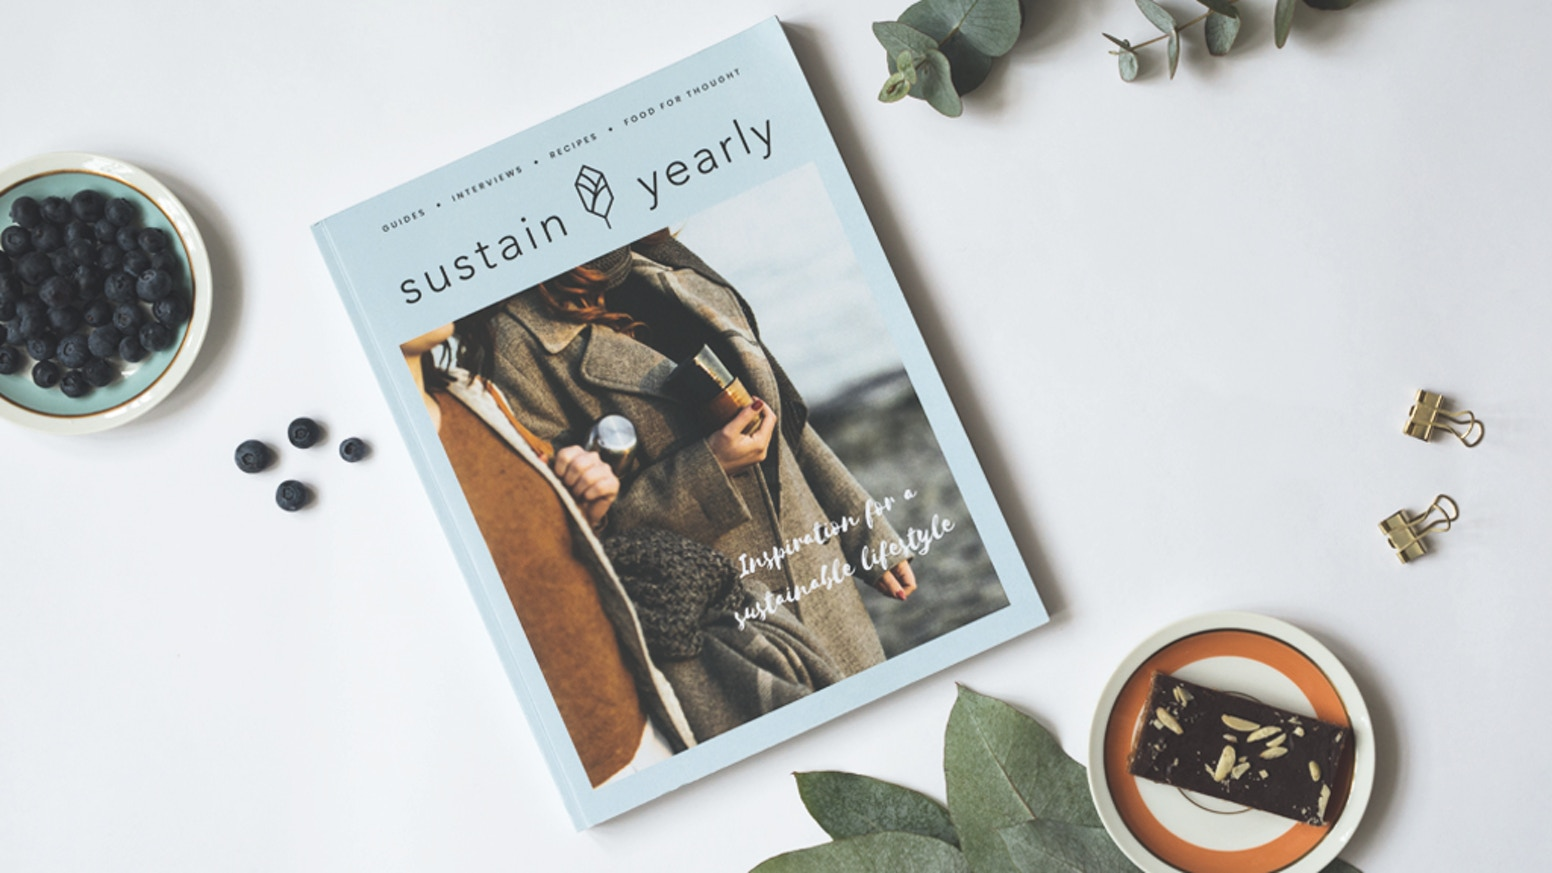 Sustain Yearly is your guide to a sustainable lifestyle. We're happy to bring it to life and will be printing and shipping in the upcoming months. If you didn't get one yet, you can check it out on our shop: